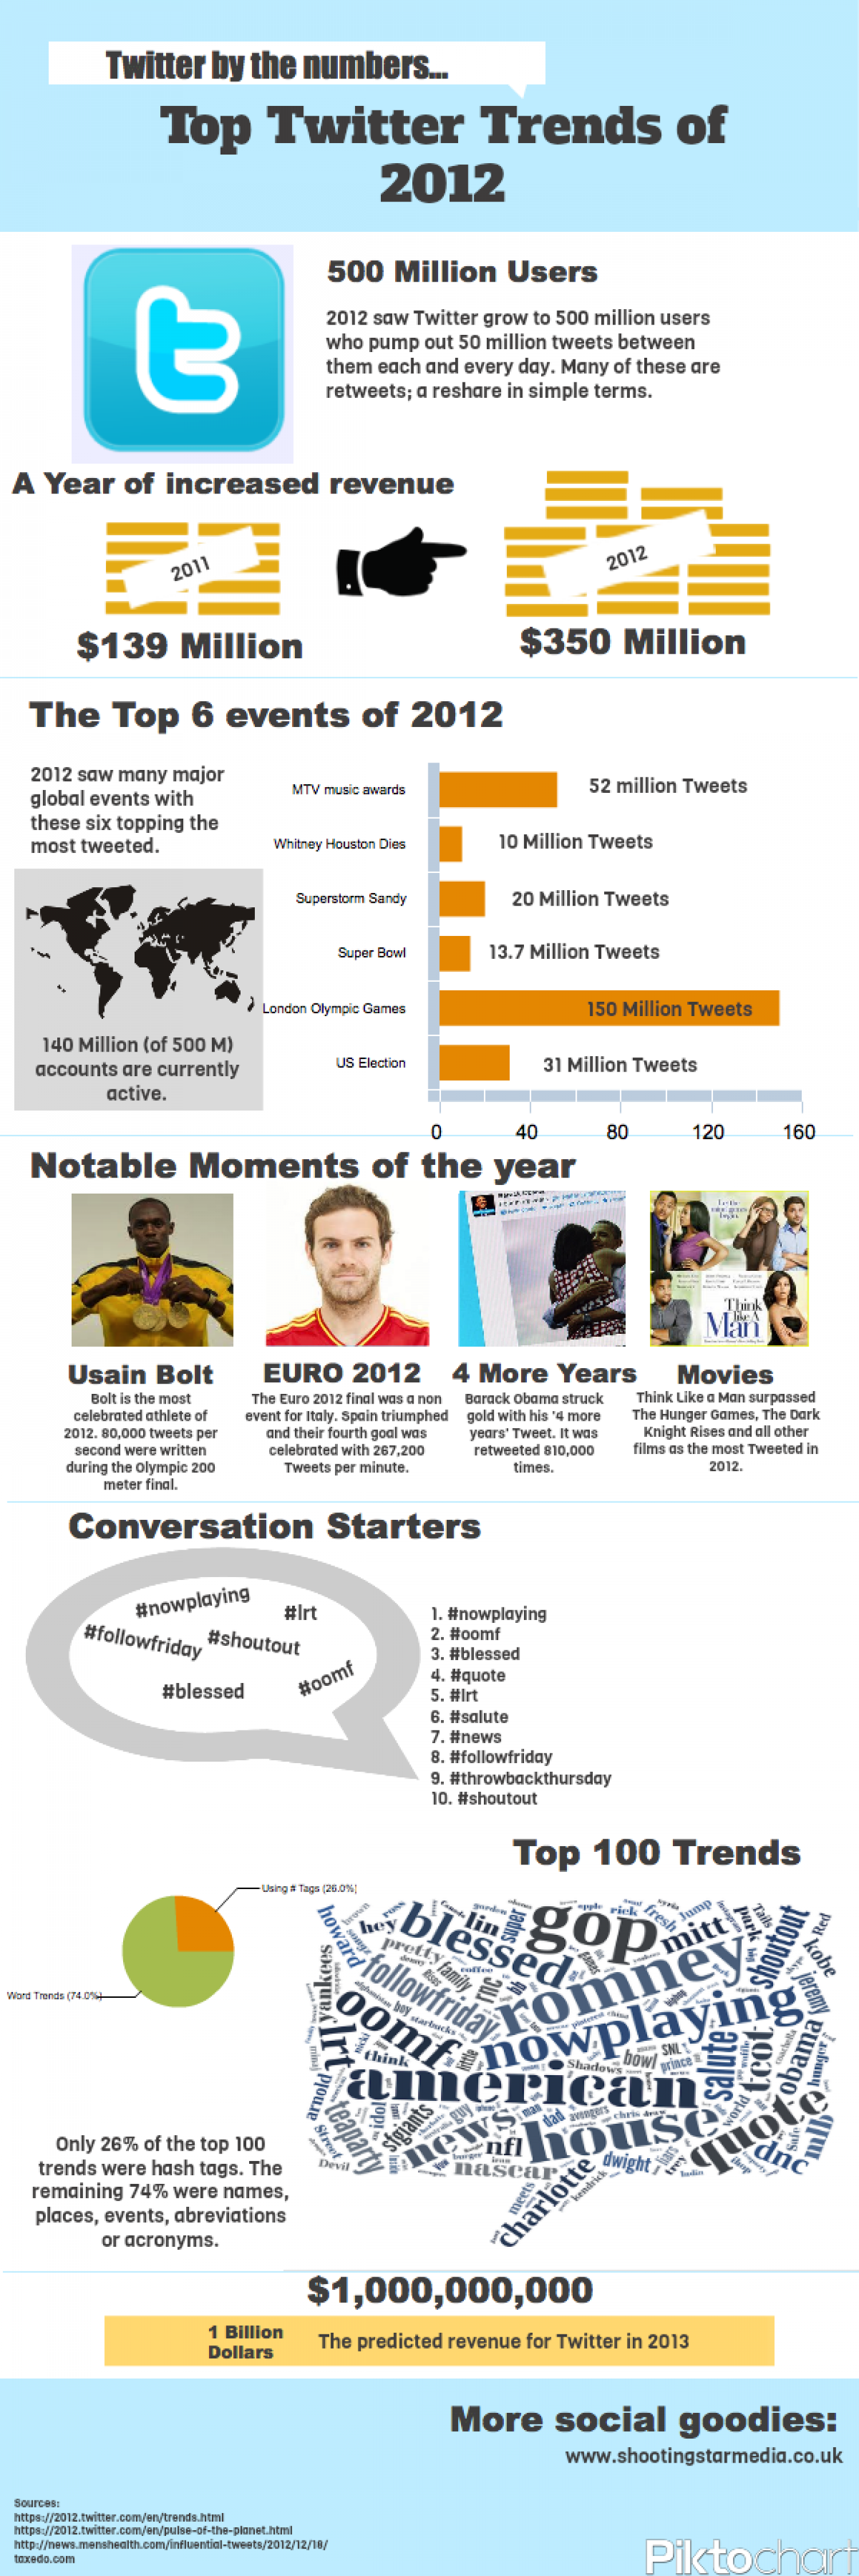 Twitter Trends 2012 Infographic